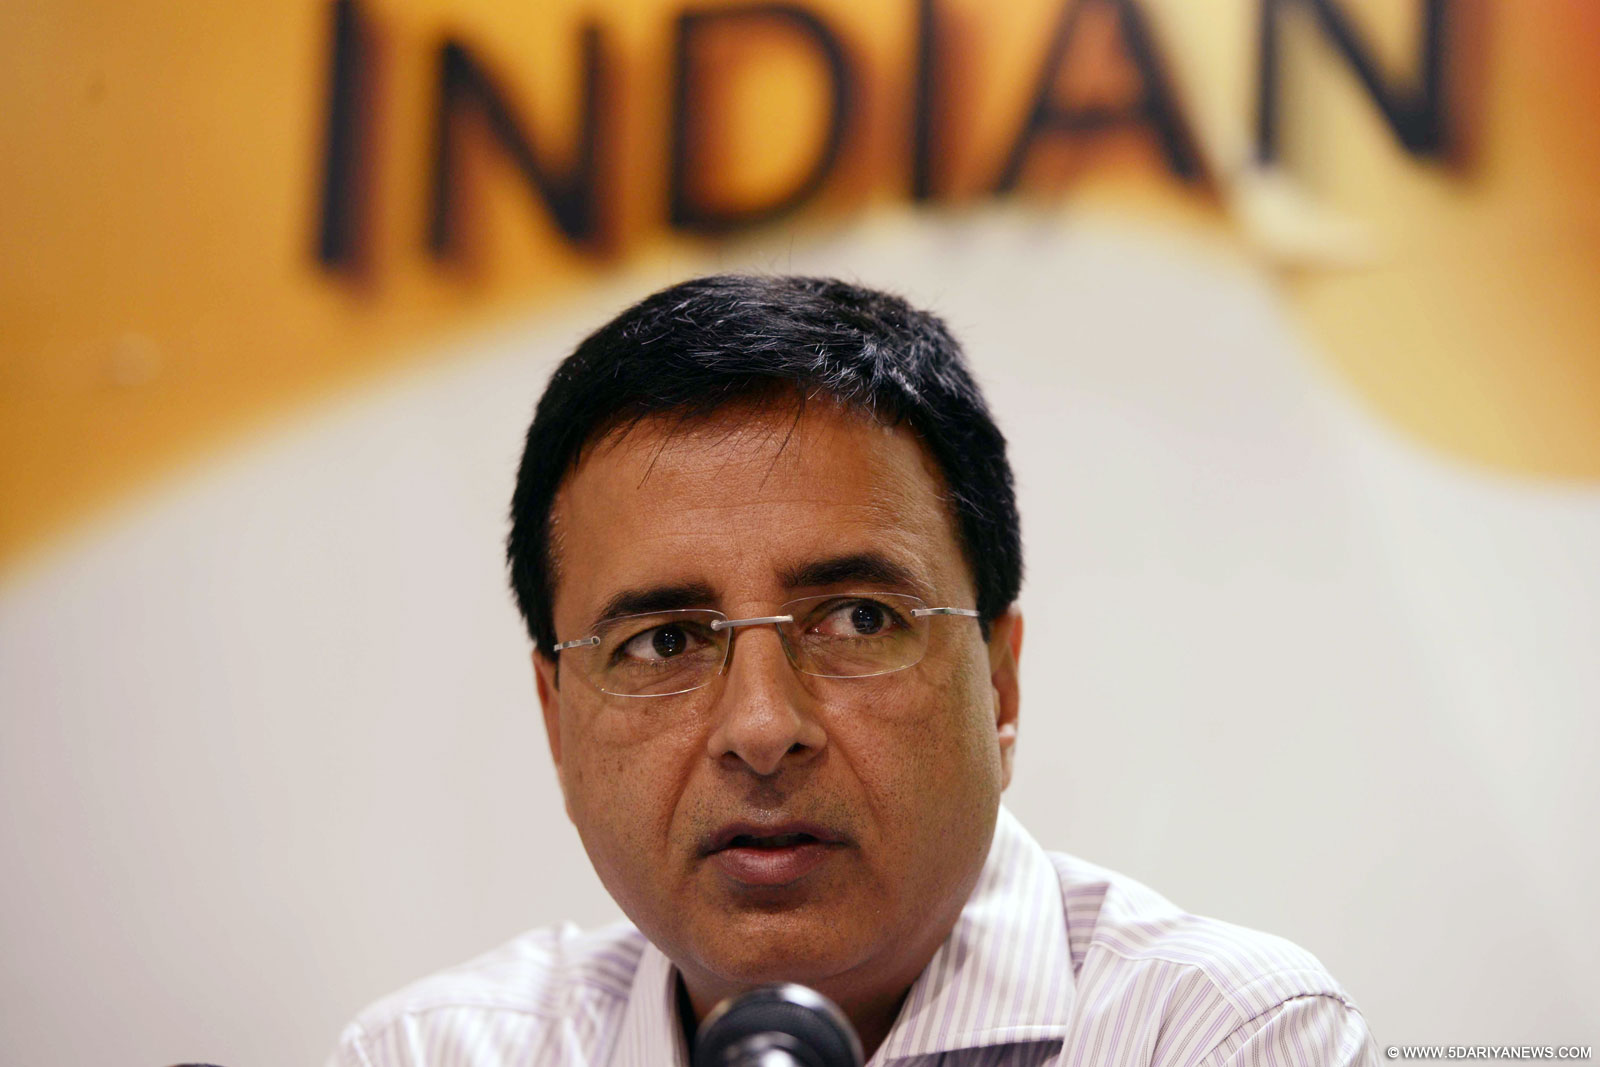 Government trying to protect Lalit Modi through extradition: Congress